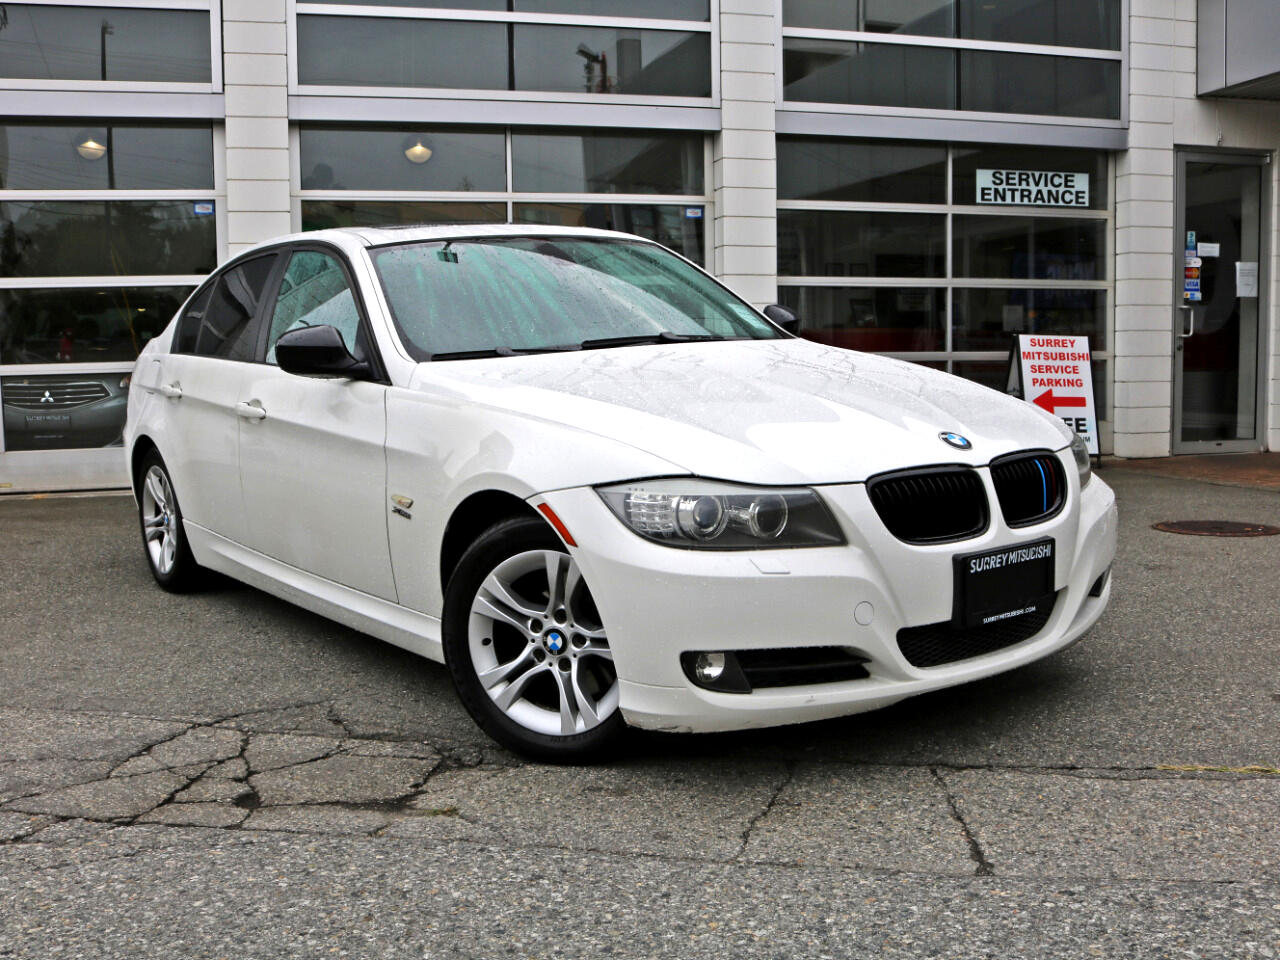 2009 BMW 328xi 328 3-series beamer $59/week OAC* Apply for a Loan